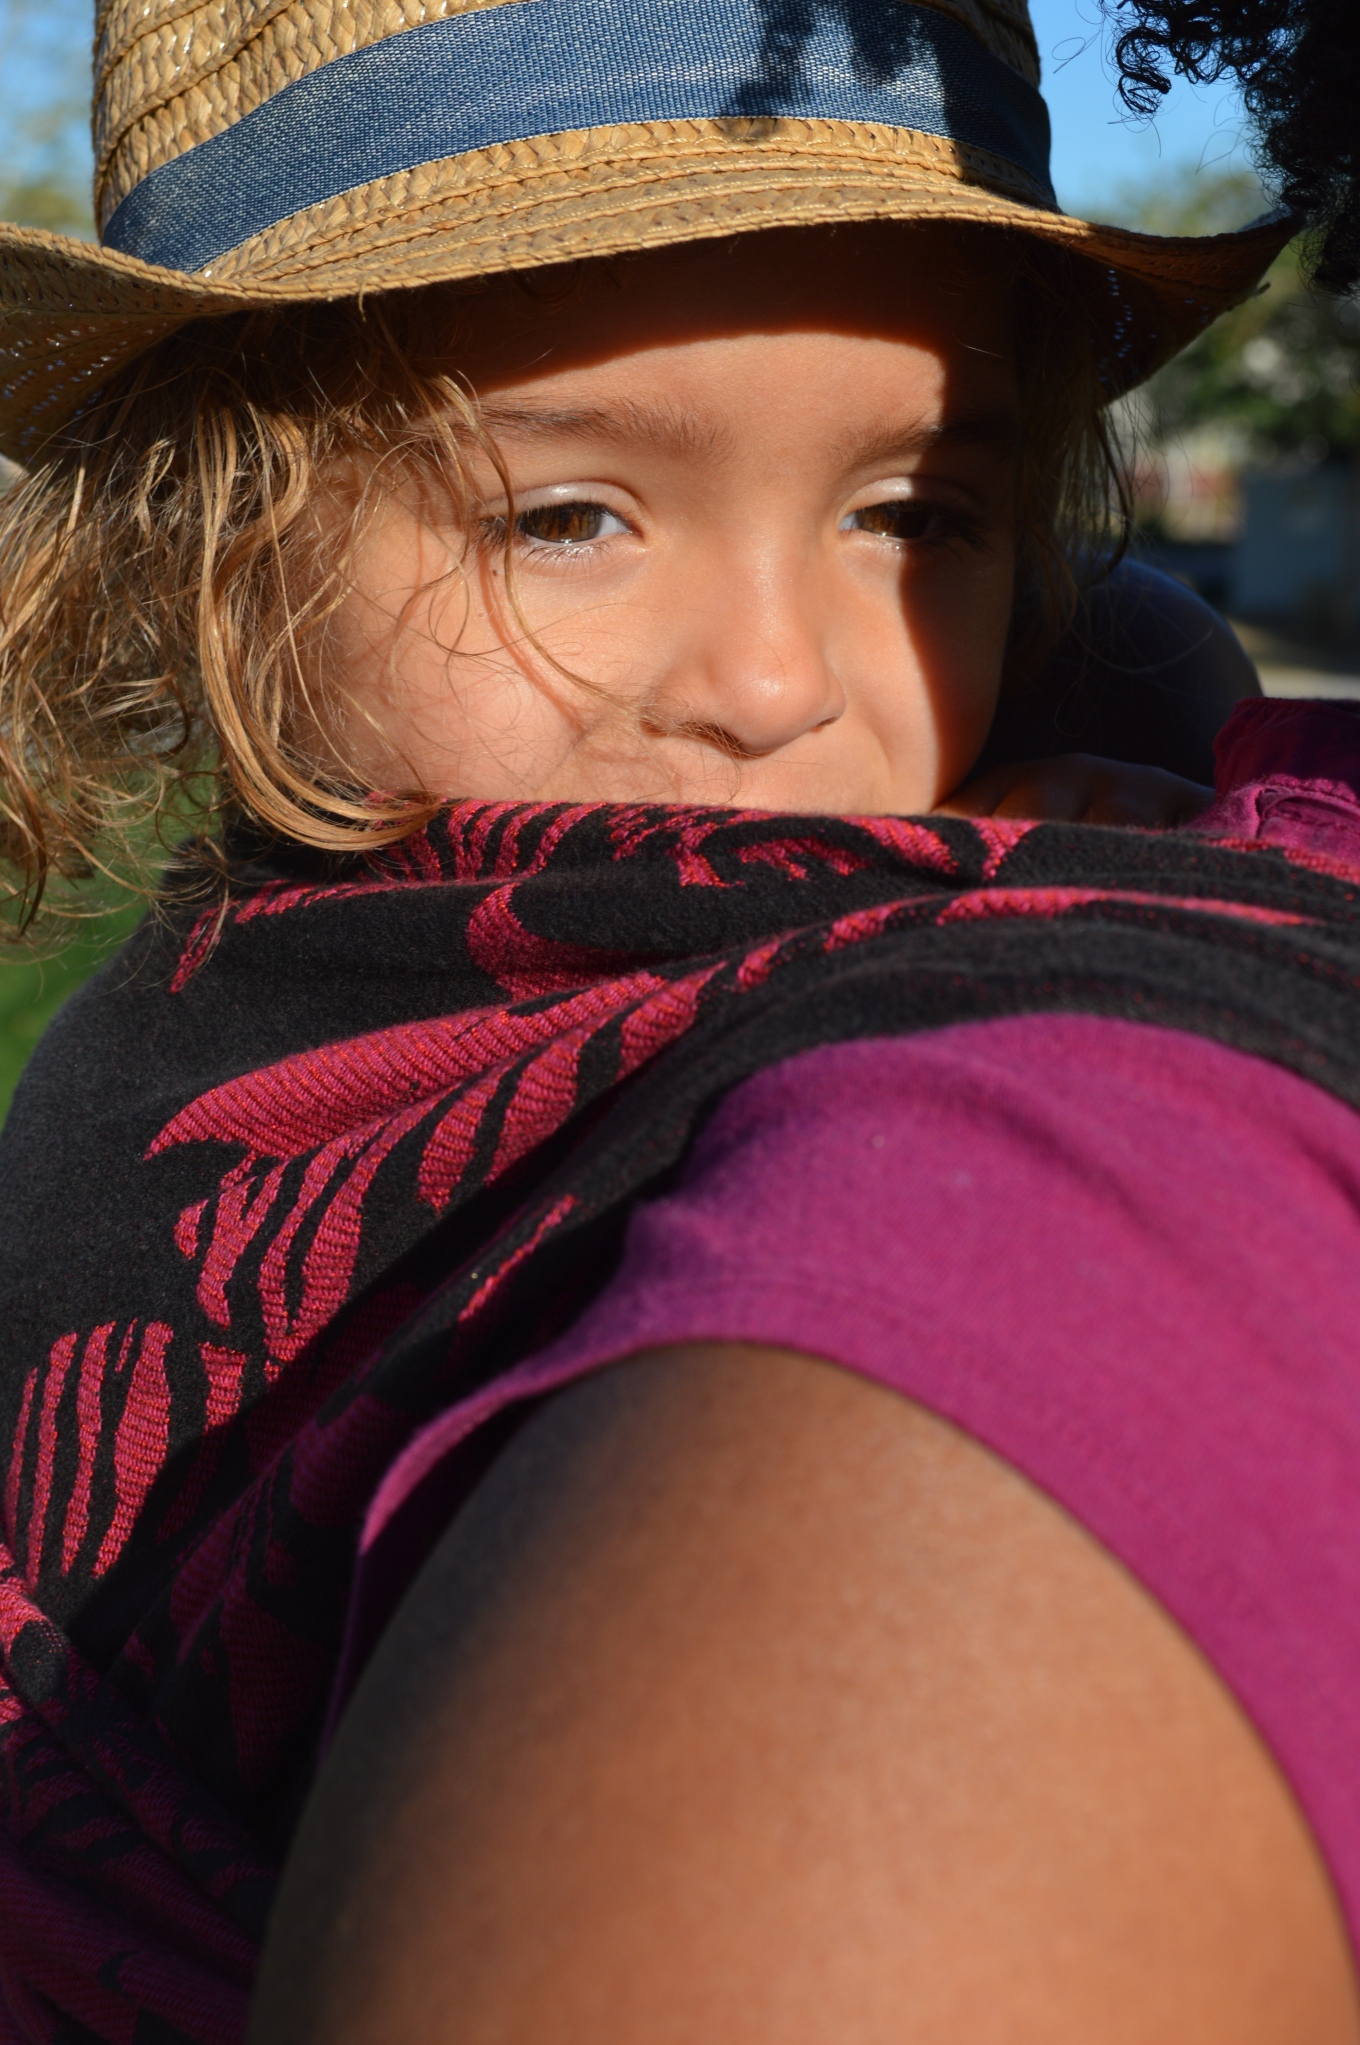 Close up shot of baby's face looking out toward the camera wearing a straw fedora hat. Baby is on Momma's back in a black wrap with magenta flowers